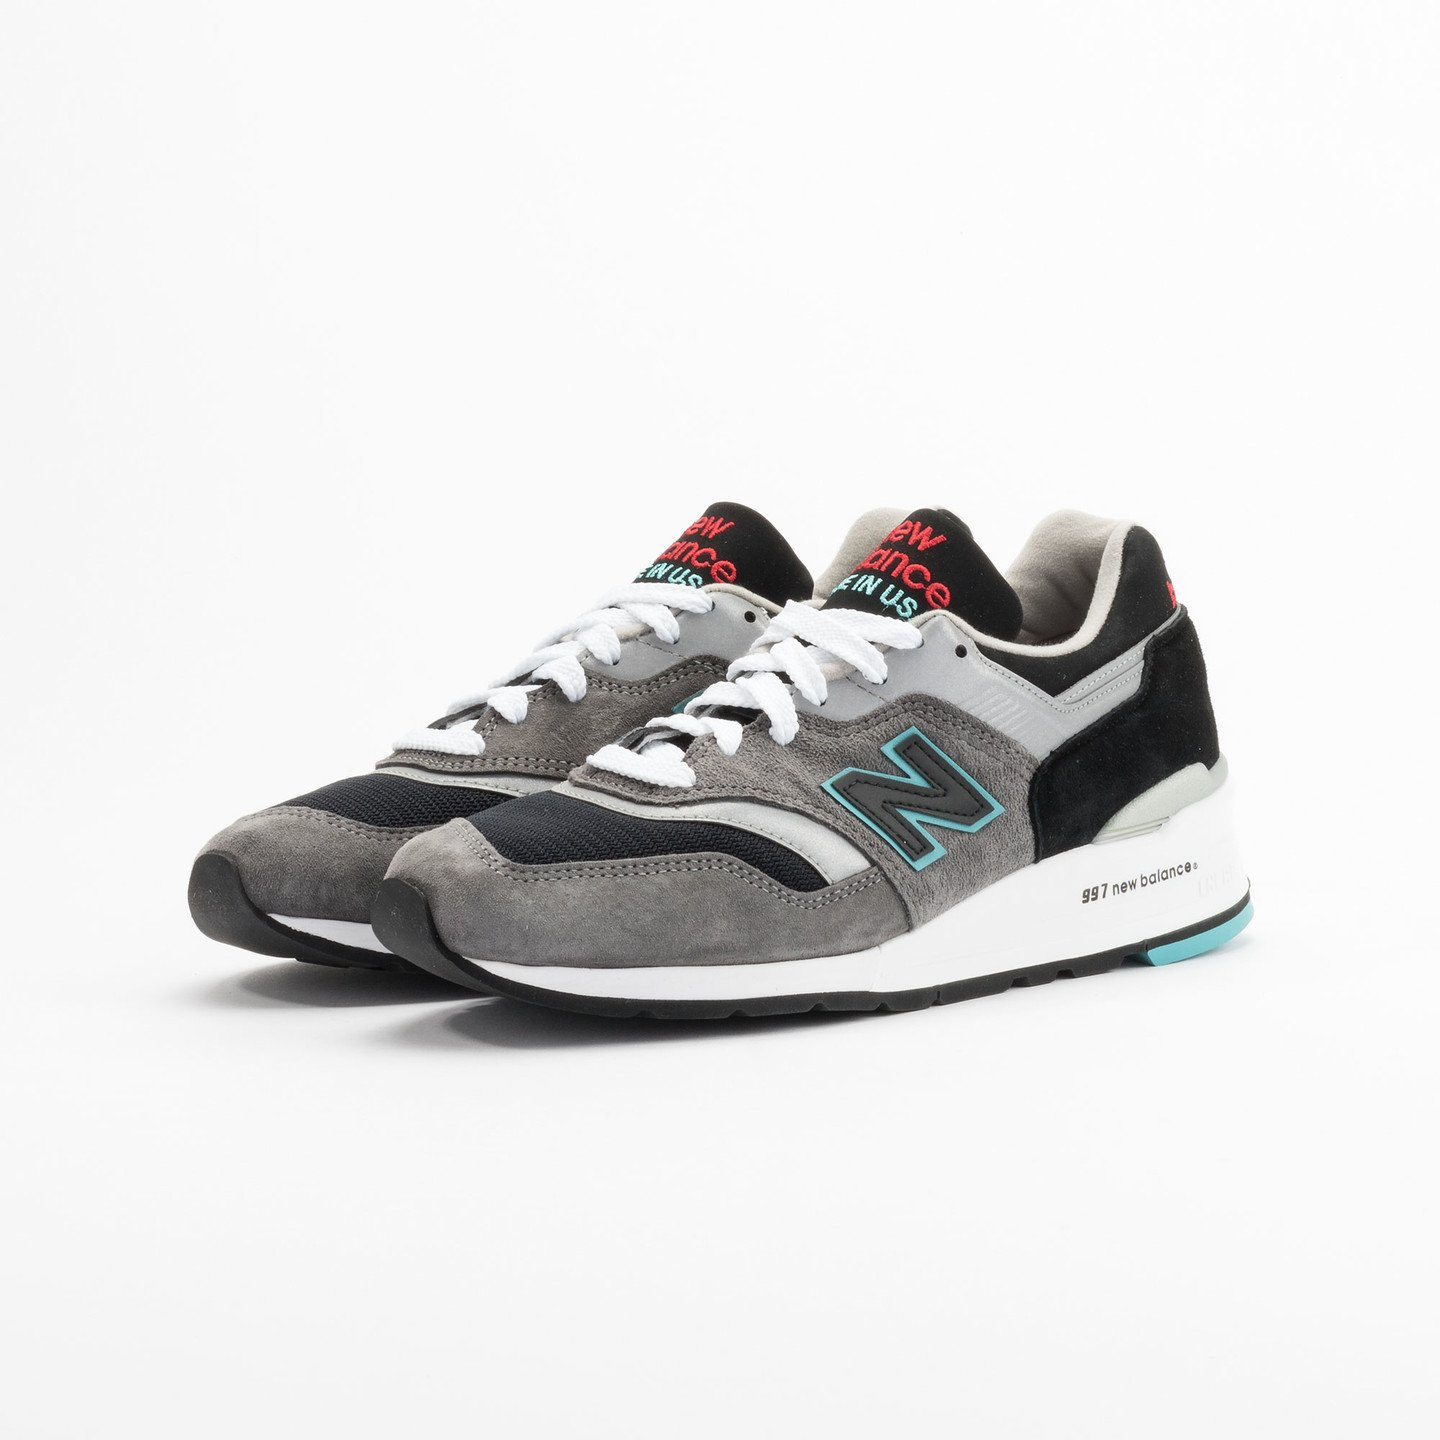 New Balance M997 Made in USA Grey / Black / Mint M997CGB-45.5